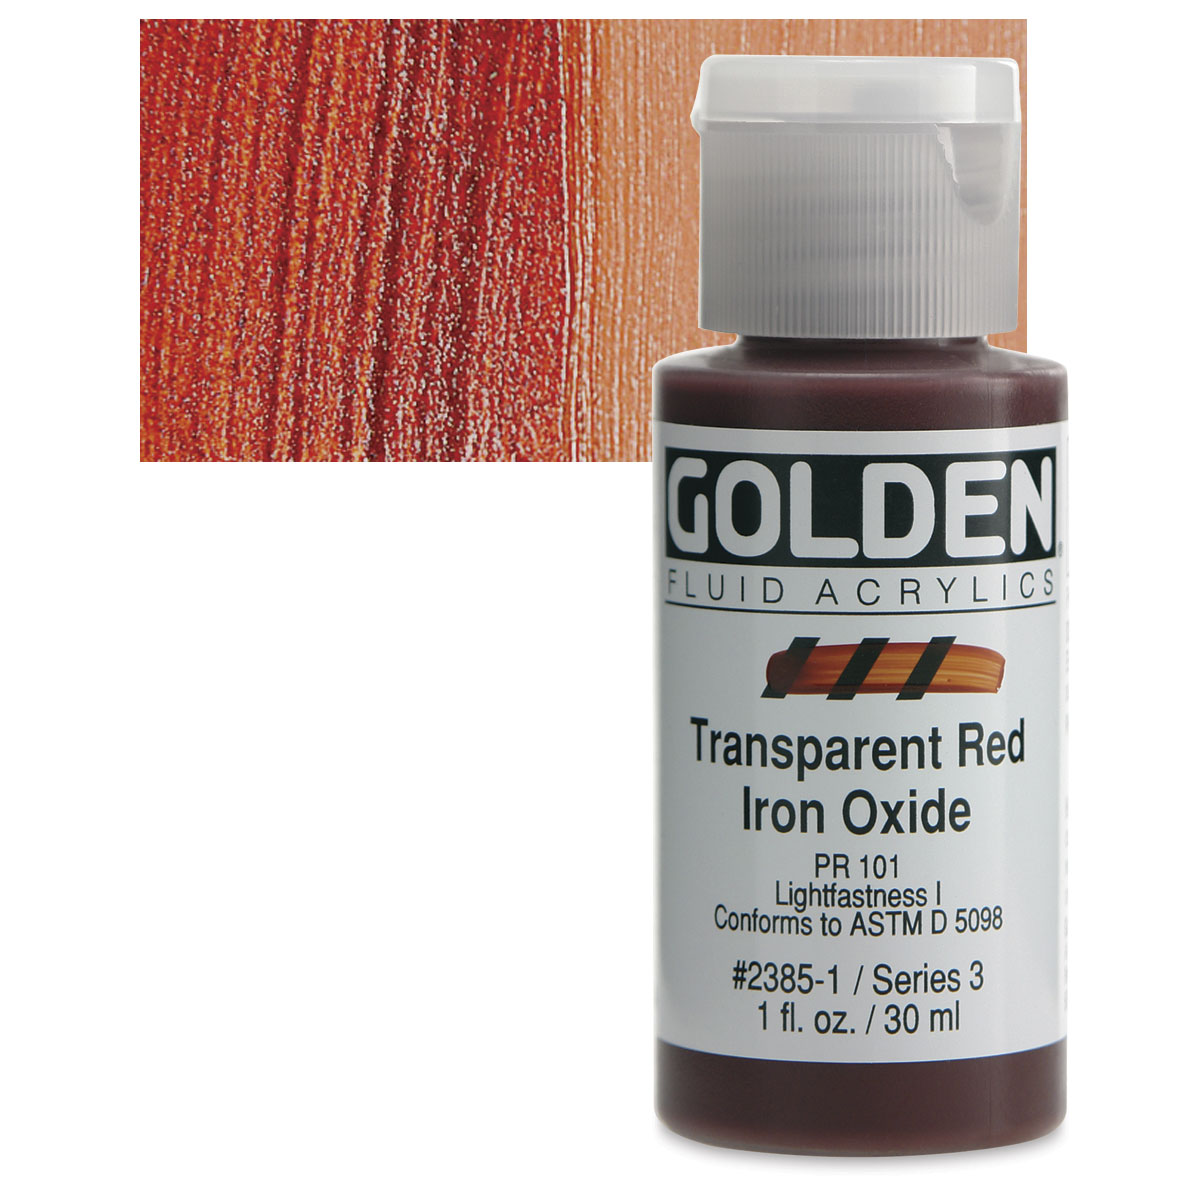 006383731 golden fluid acrylics blick art materials